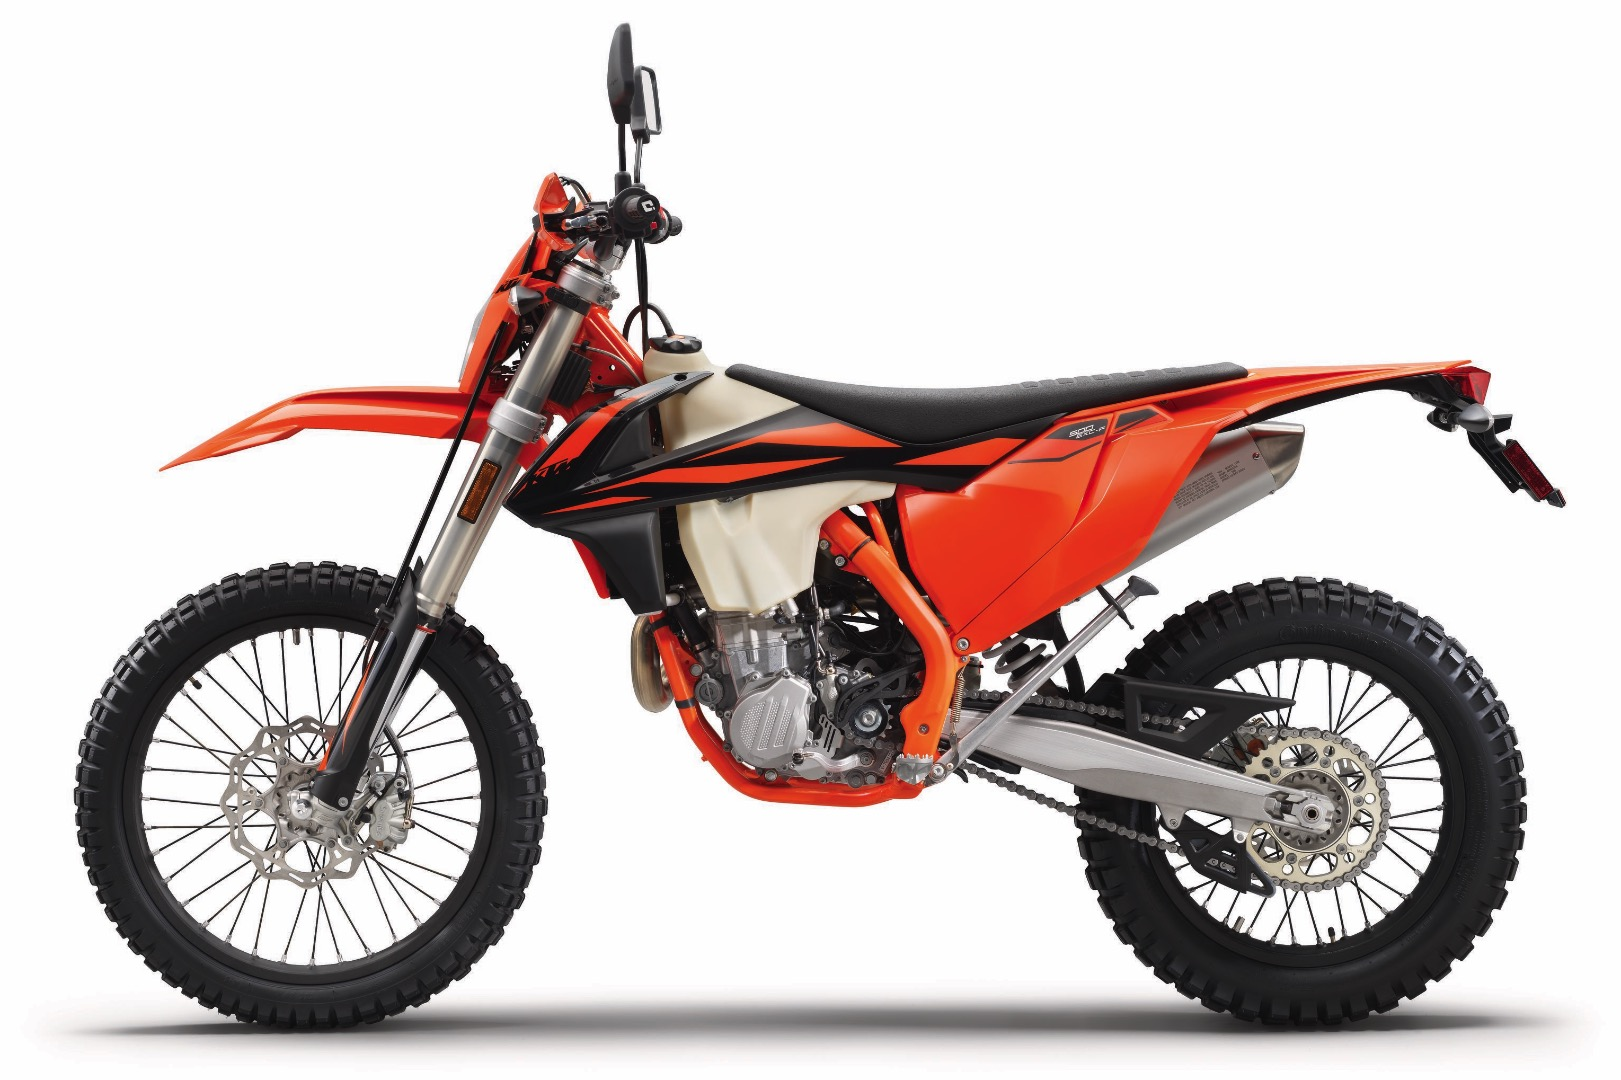 2019 KTM EXC-F Dual Sport Line First Look